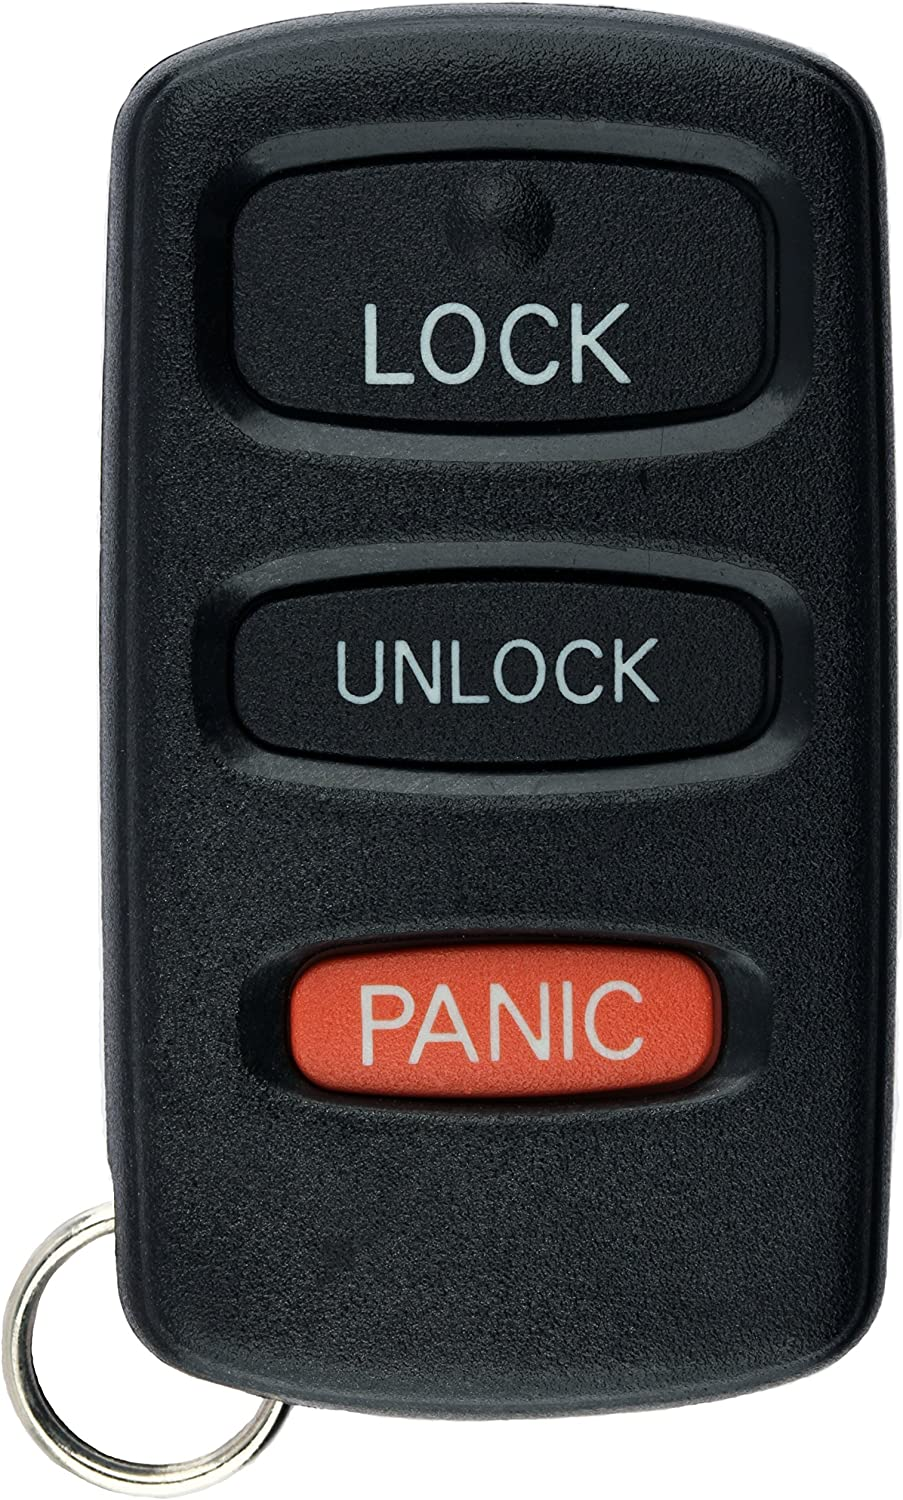 KeylessOption Keyless Entry Remote Control Car Key Fob Replacement for OUCG8D-525M-A Panic